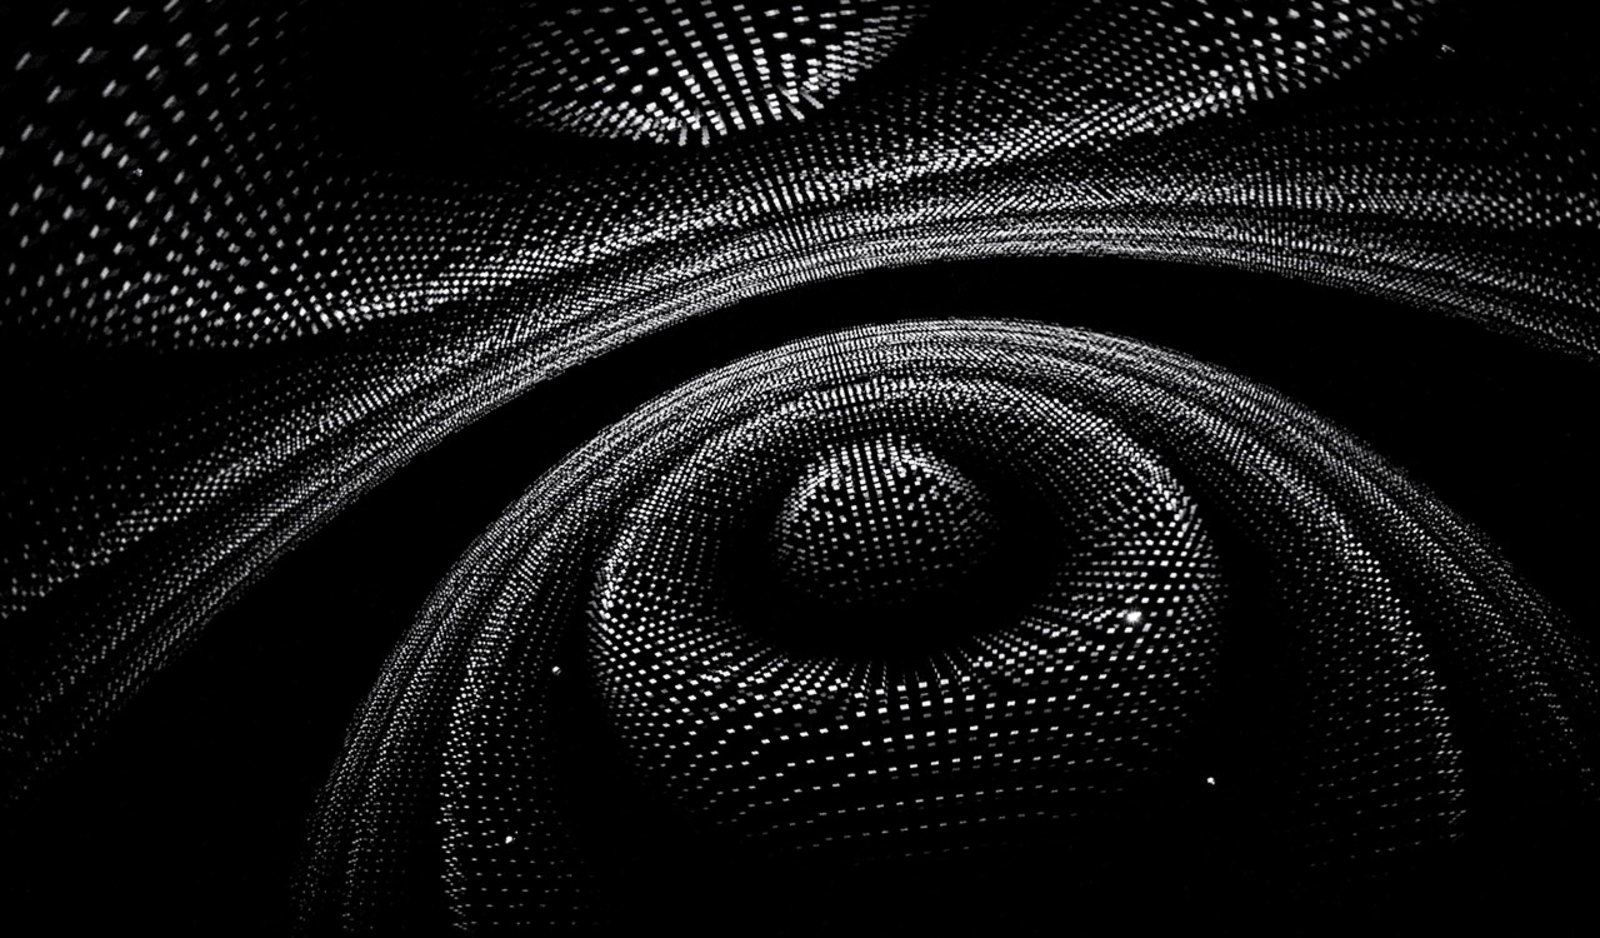 INTERFERENCE by Synthestruct - Sónar+D Barcelona 2018